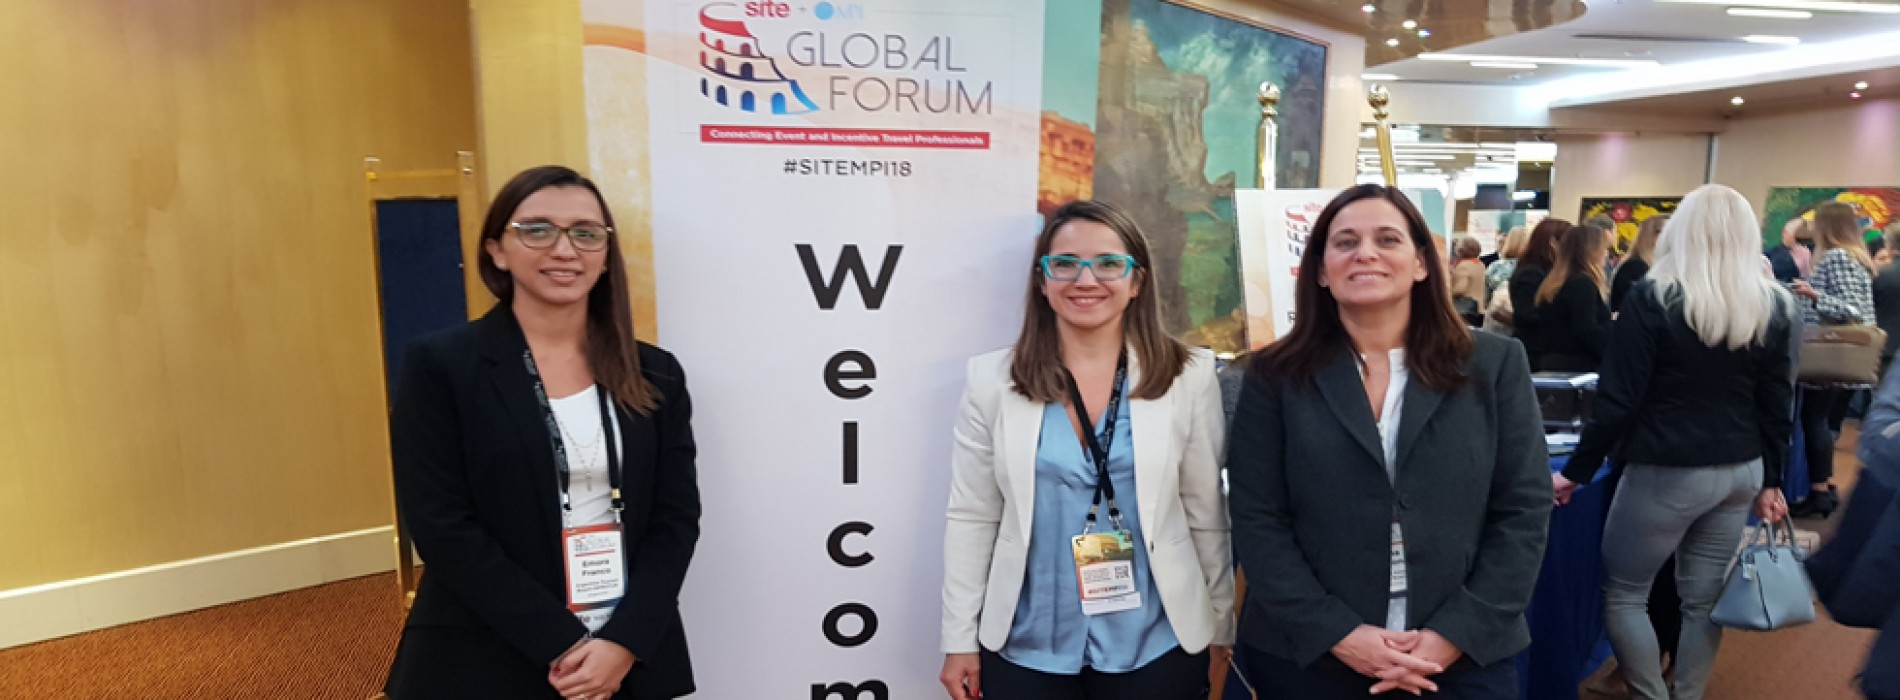 Argentina present at the Global Conference SITE